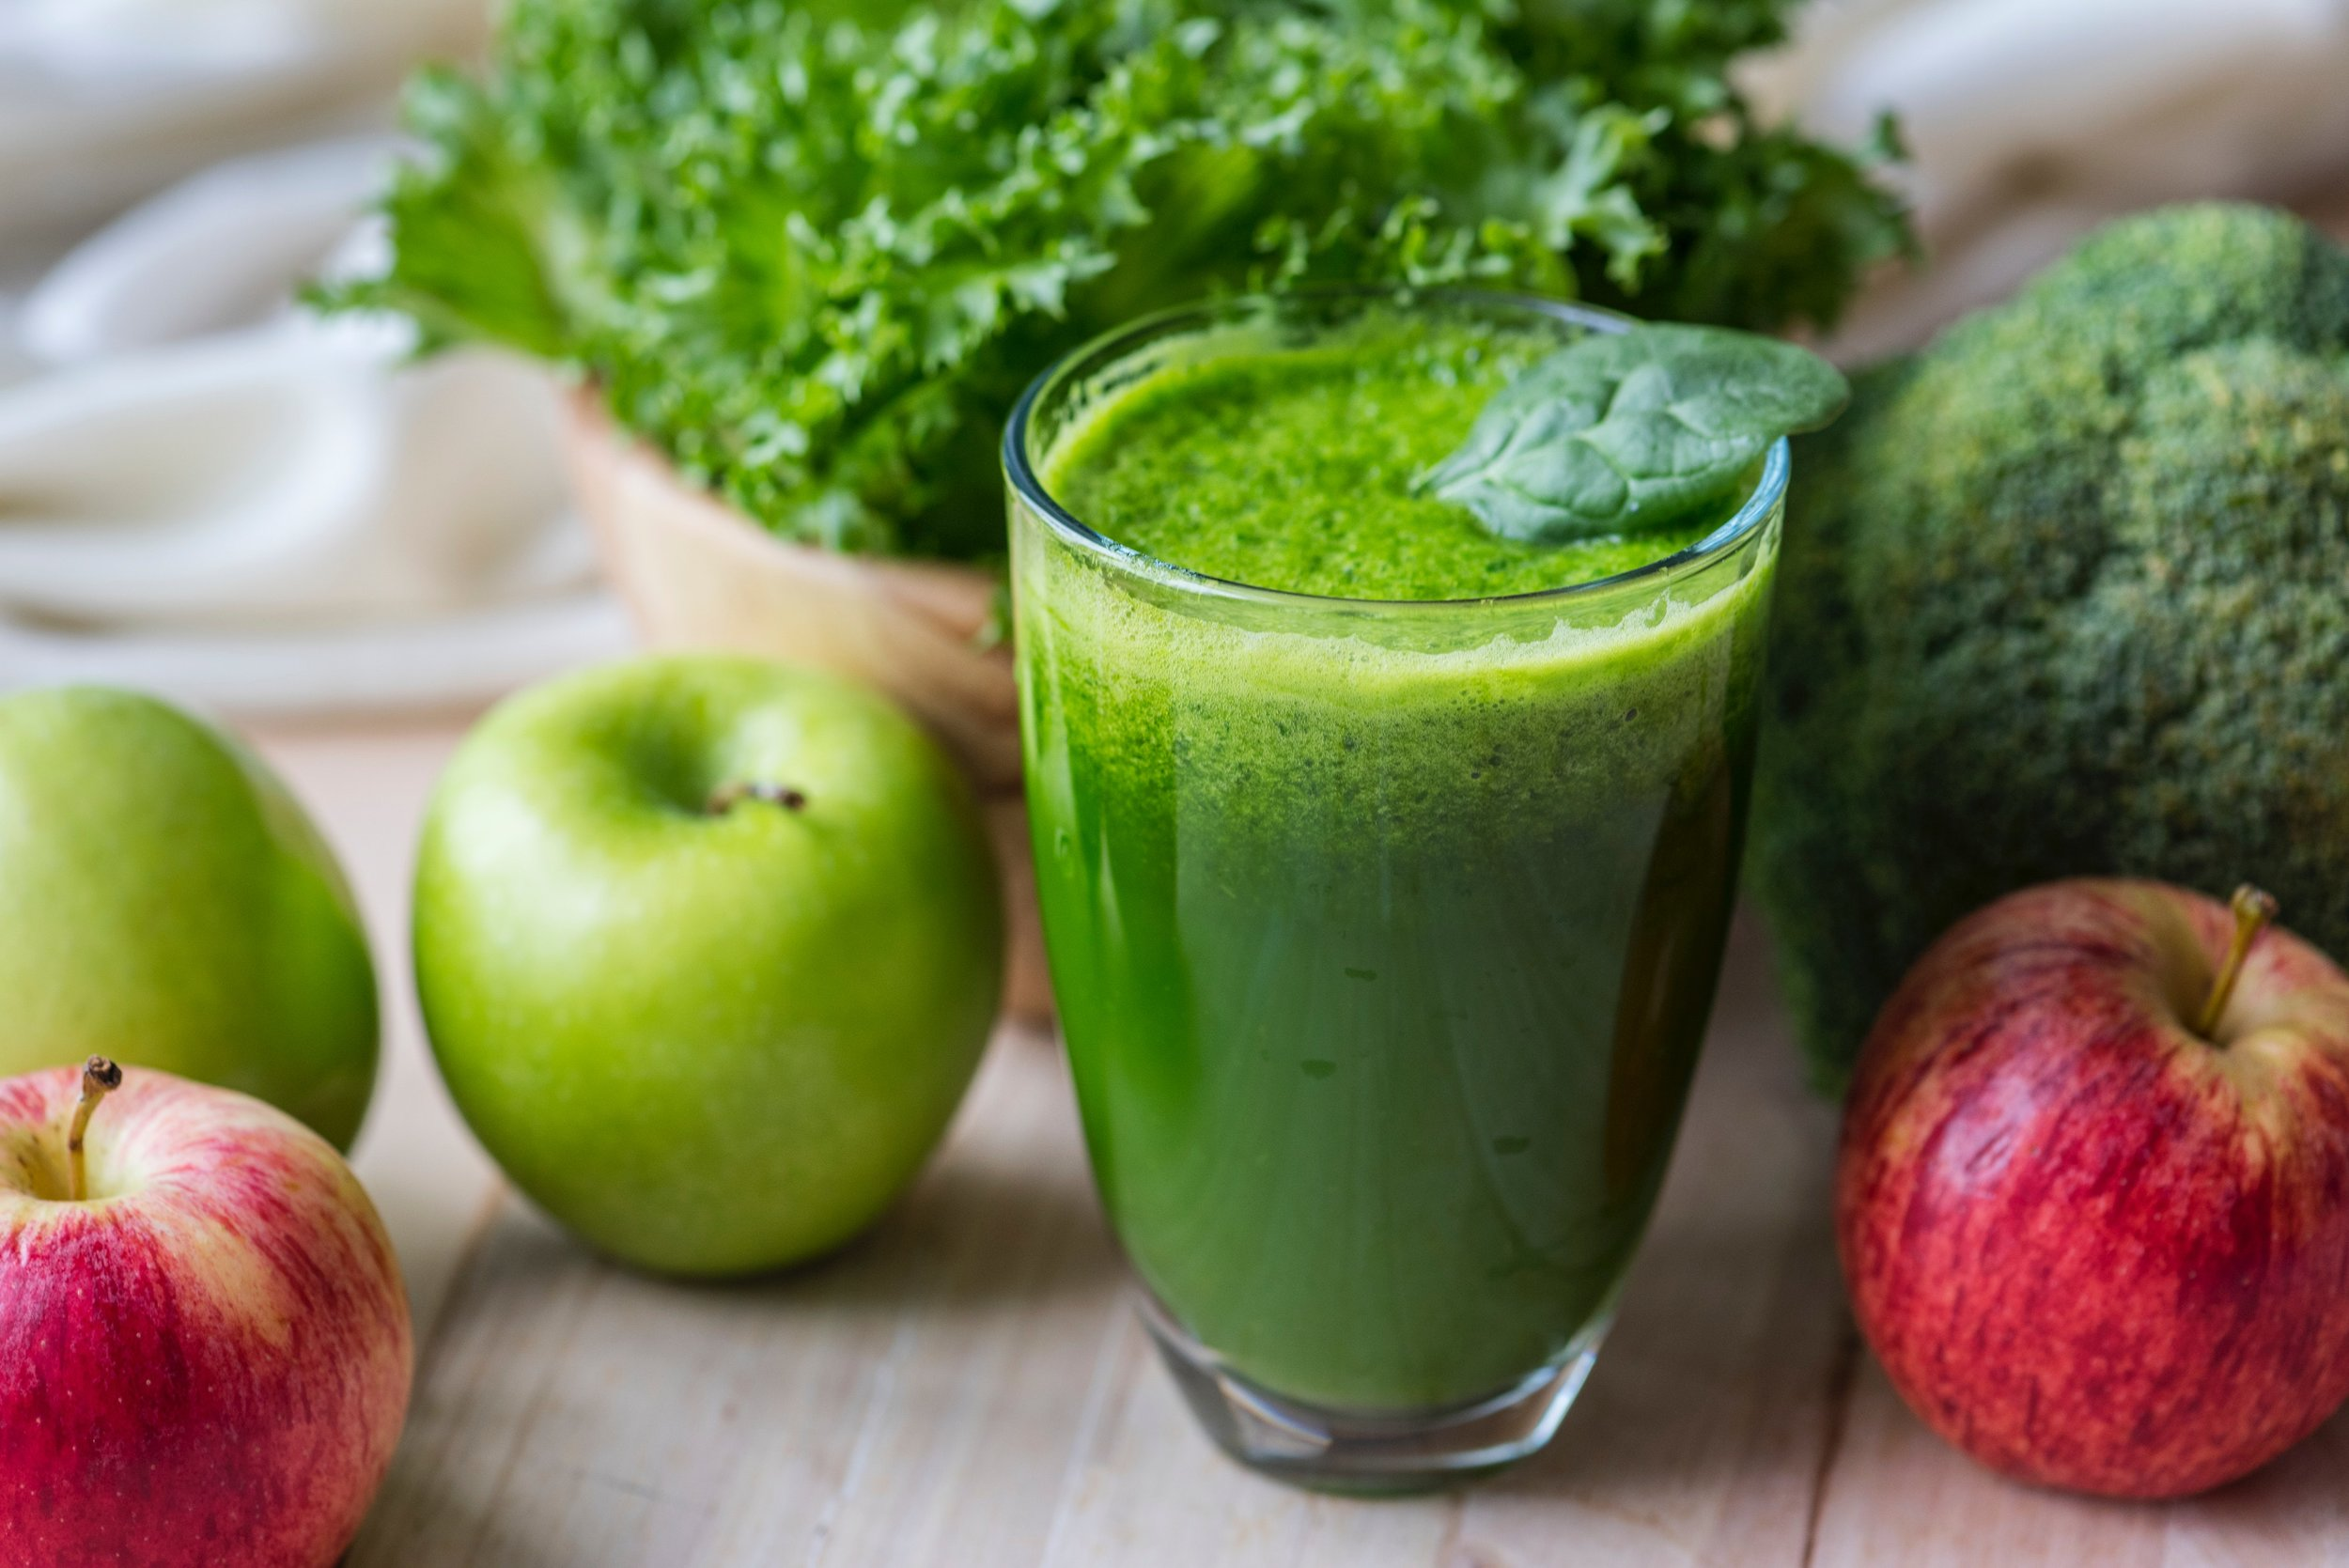 diet-fresh-green-detox-1171552.jpg